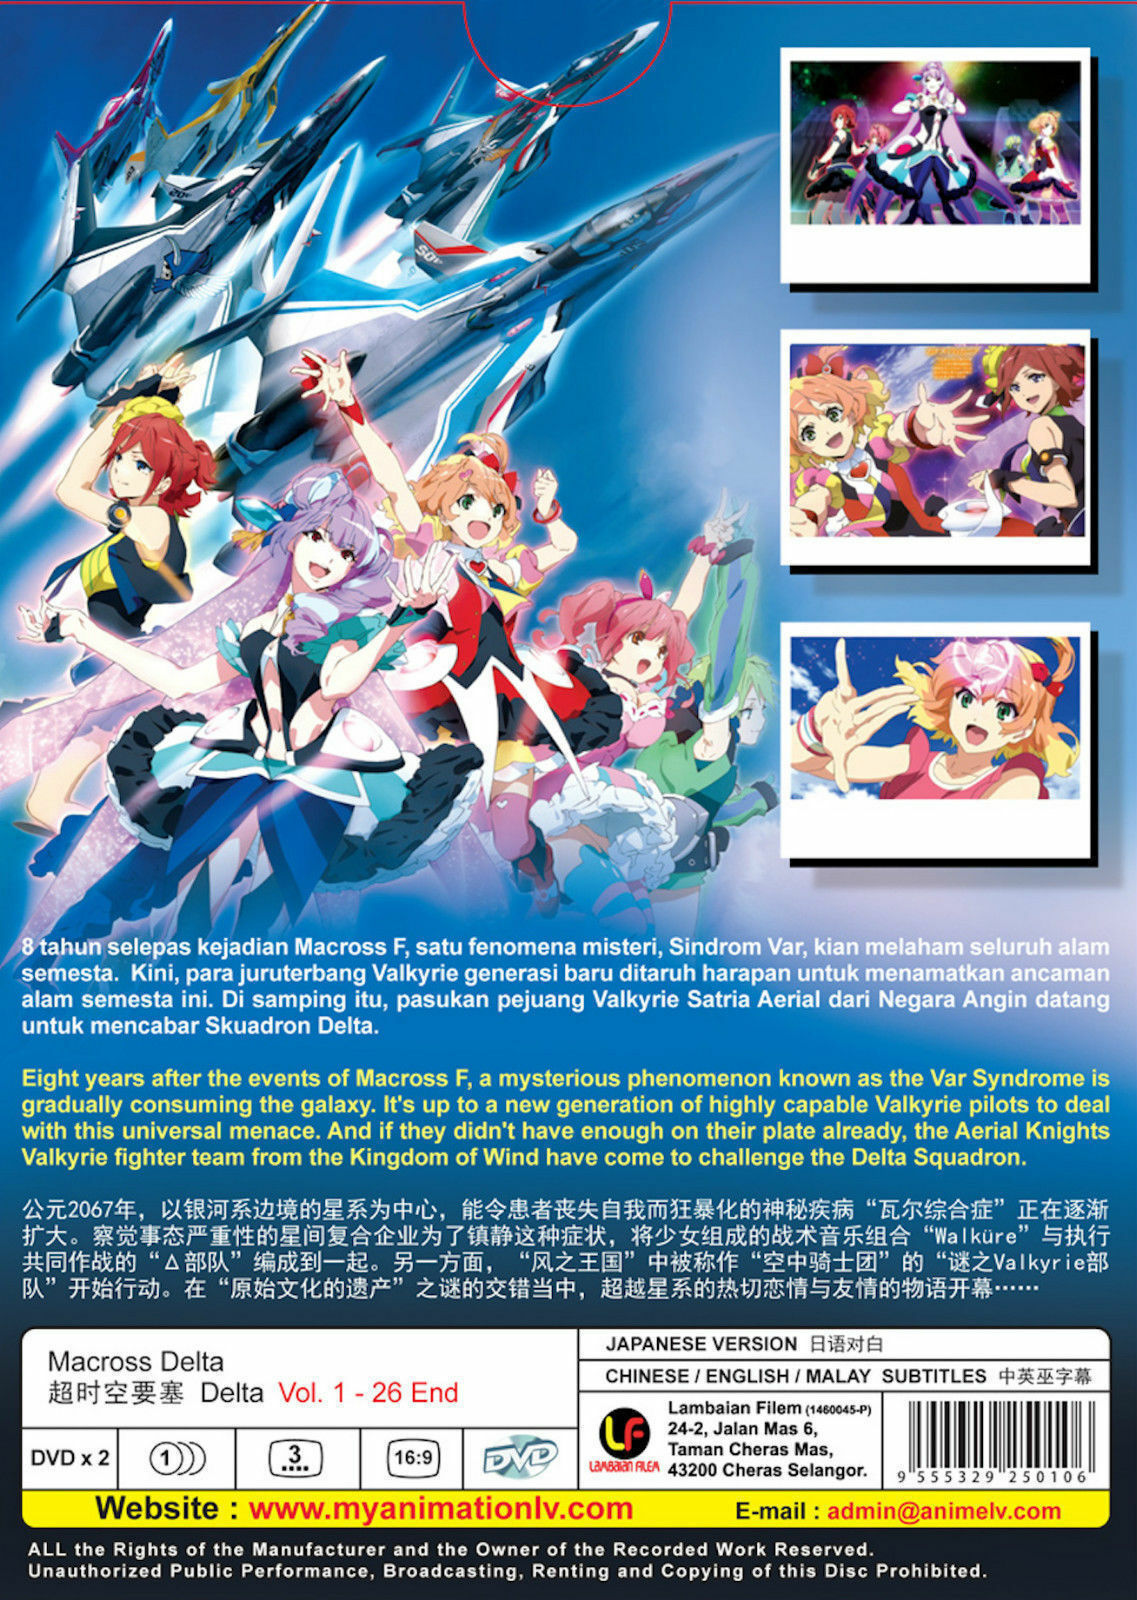 Macross Delta (TV 1 - 26 End)